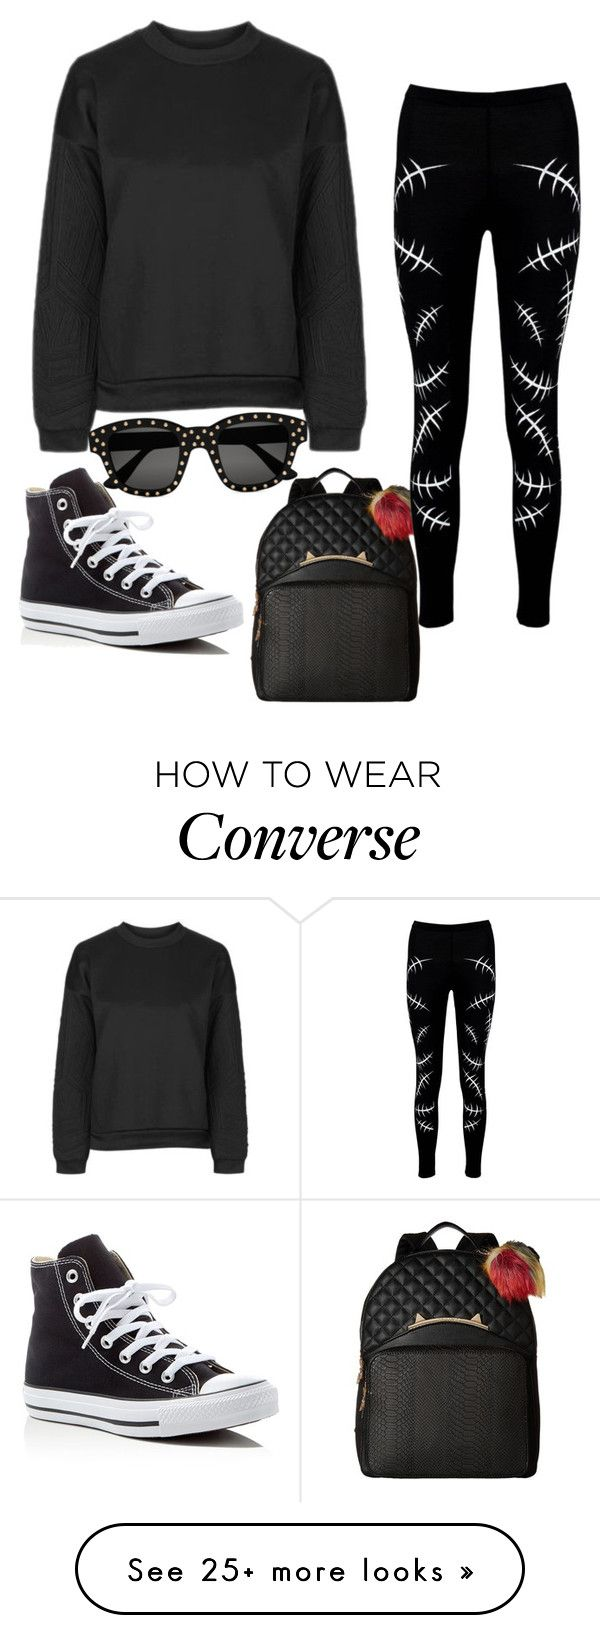 """Untitled #837"" by zeniboo on Polyvore featuring Topshop, Betsey Johnson, Boohoo, Converse and Yves Saint Laurent"